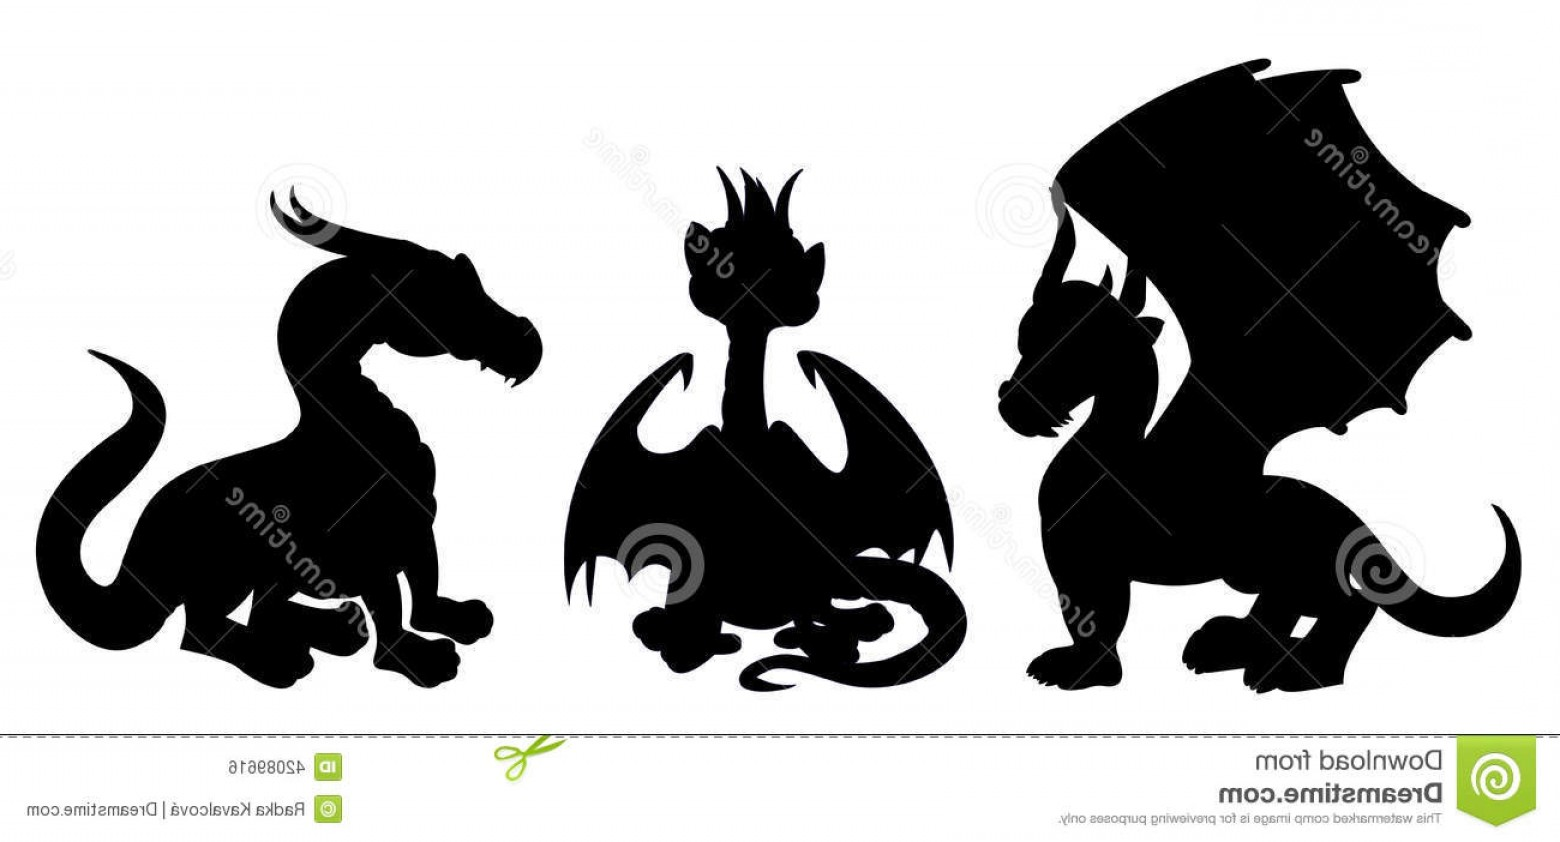 Baby Dragon Silhouette Vector: Stock Illustration Dragon Cartoon Silhouettes Collection Illustrations Fantasy Fairytale Dragons Isolated White Background Image